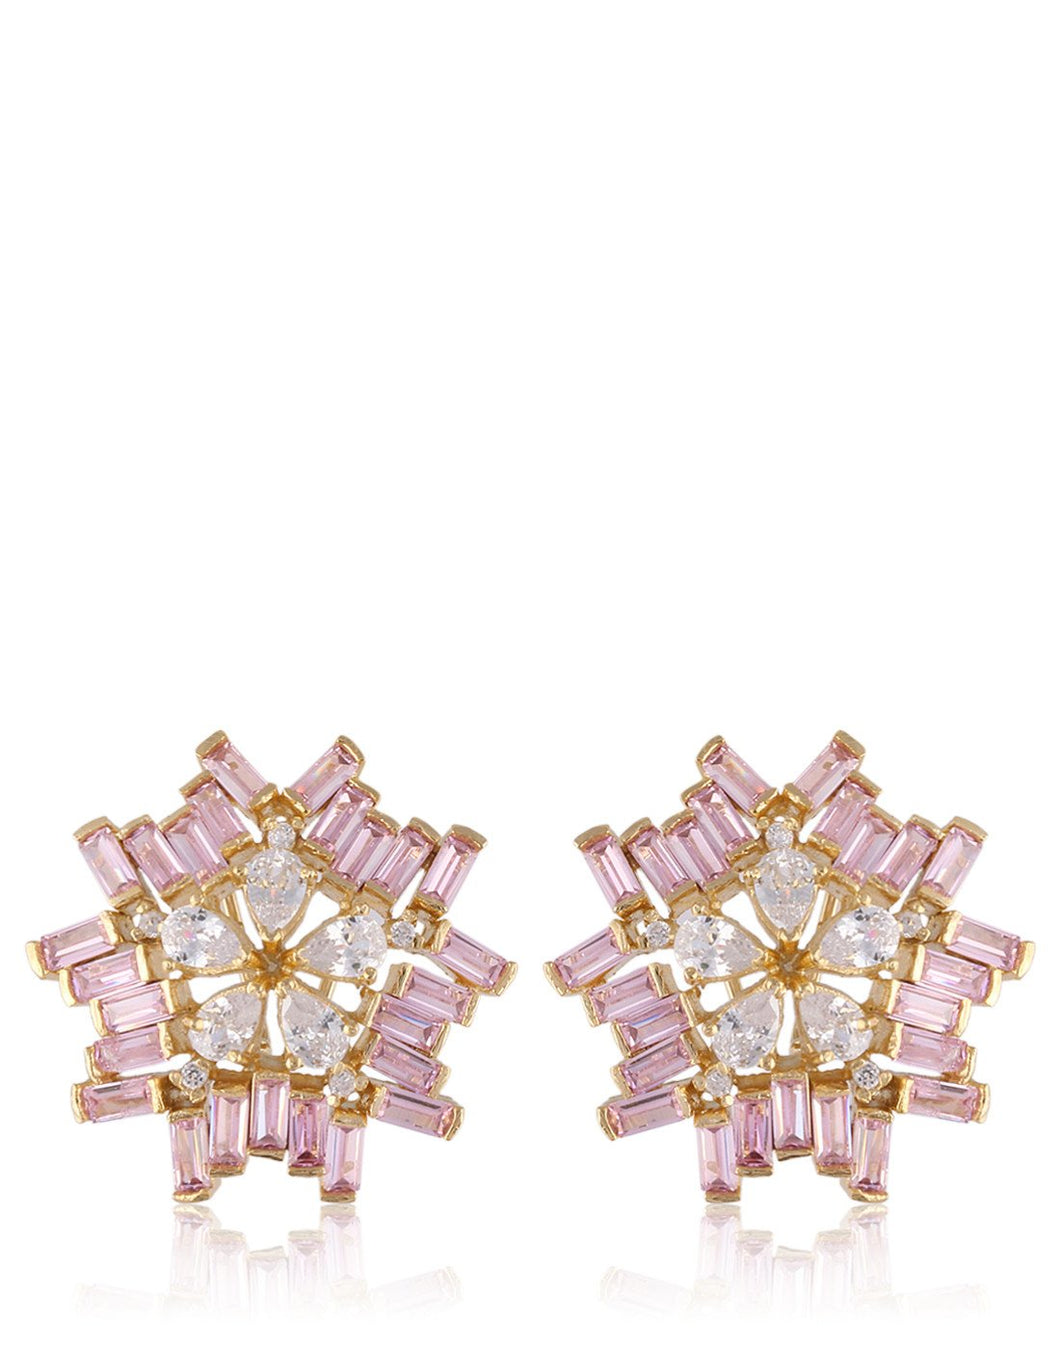 Geometrical Flower Earrings Studded With American Colored Stones & Diamonds By Meena Bazaar